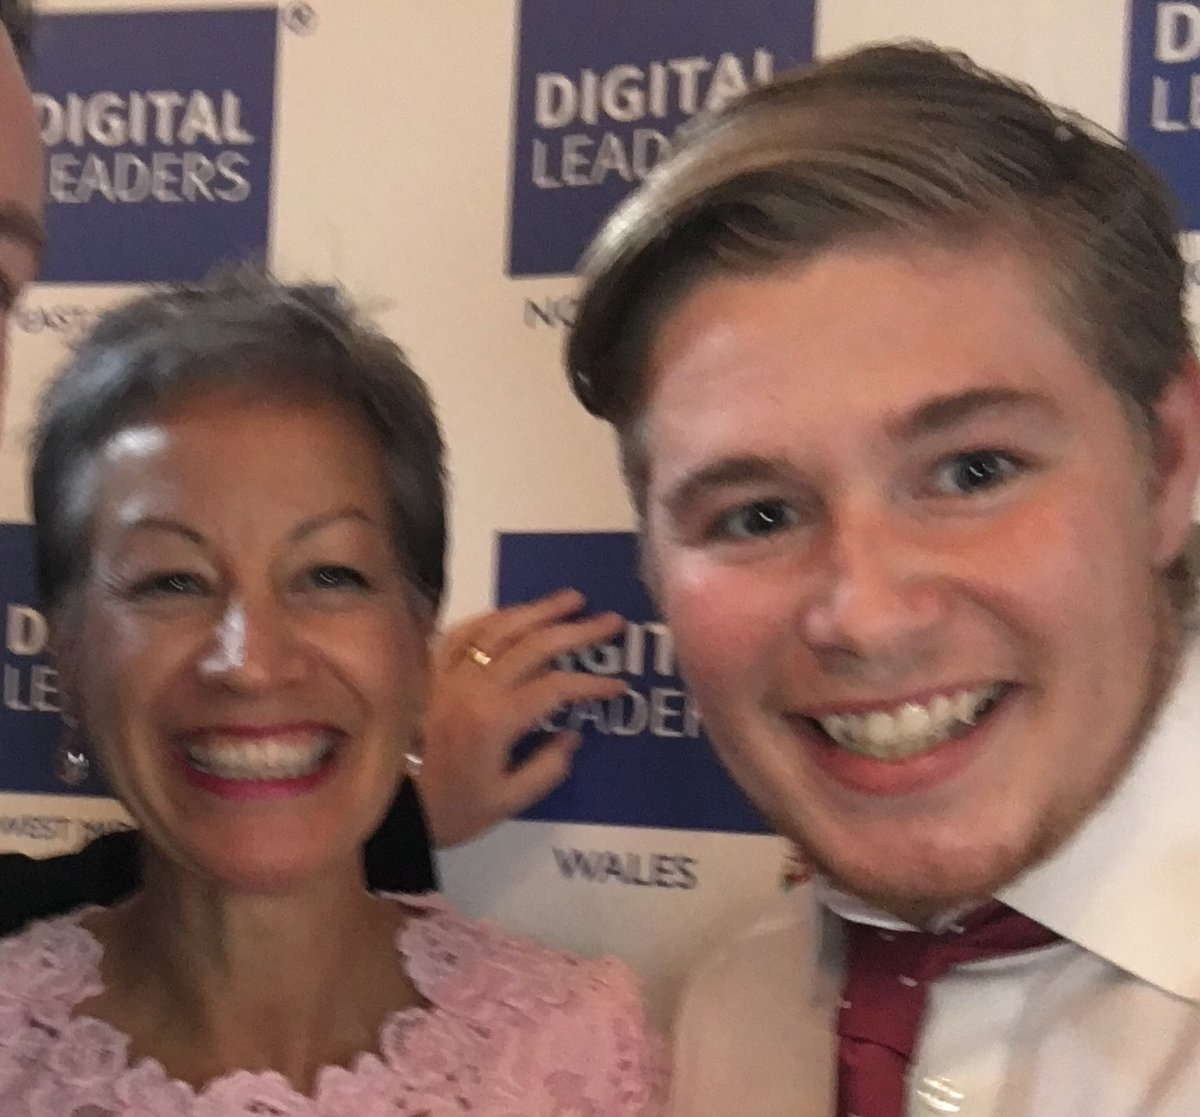 Congrats to the &#39;Young Digital Leader&#39; of the year is @JackParsons_CEO! #digileaders #DL100 Awards #Ambition #Powerhouse<br>http://pic.twitter.com/ns0CW6h74t